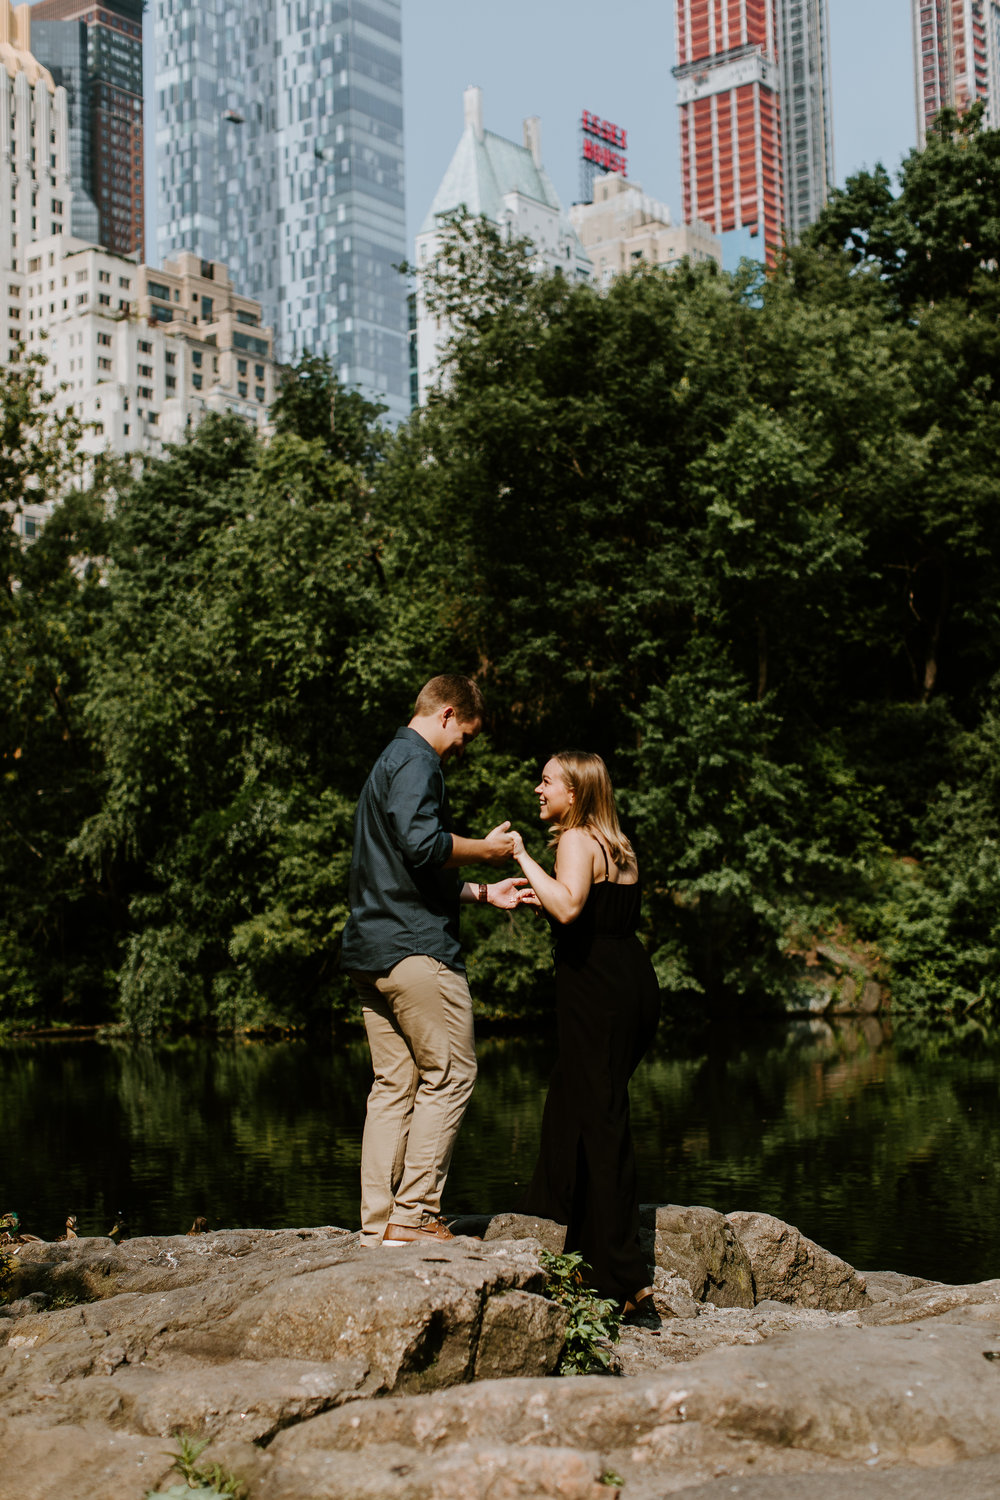 The New York Files | The Proposal